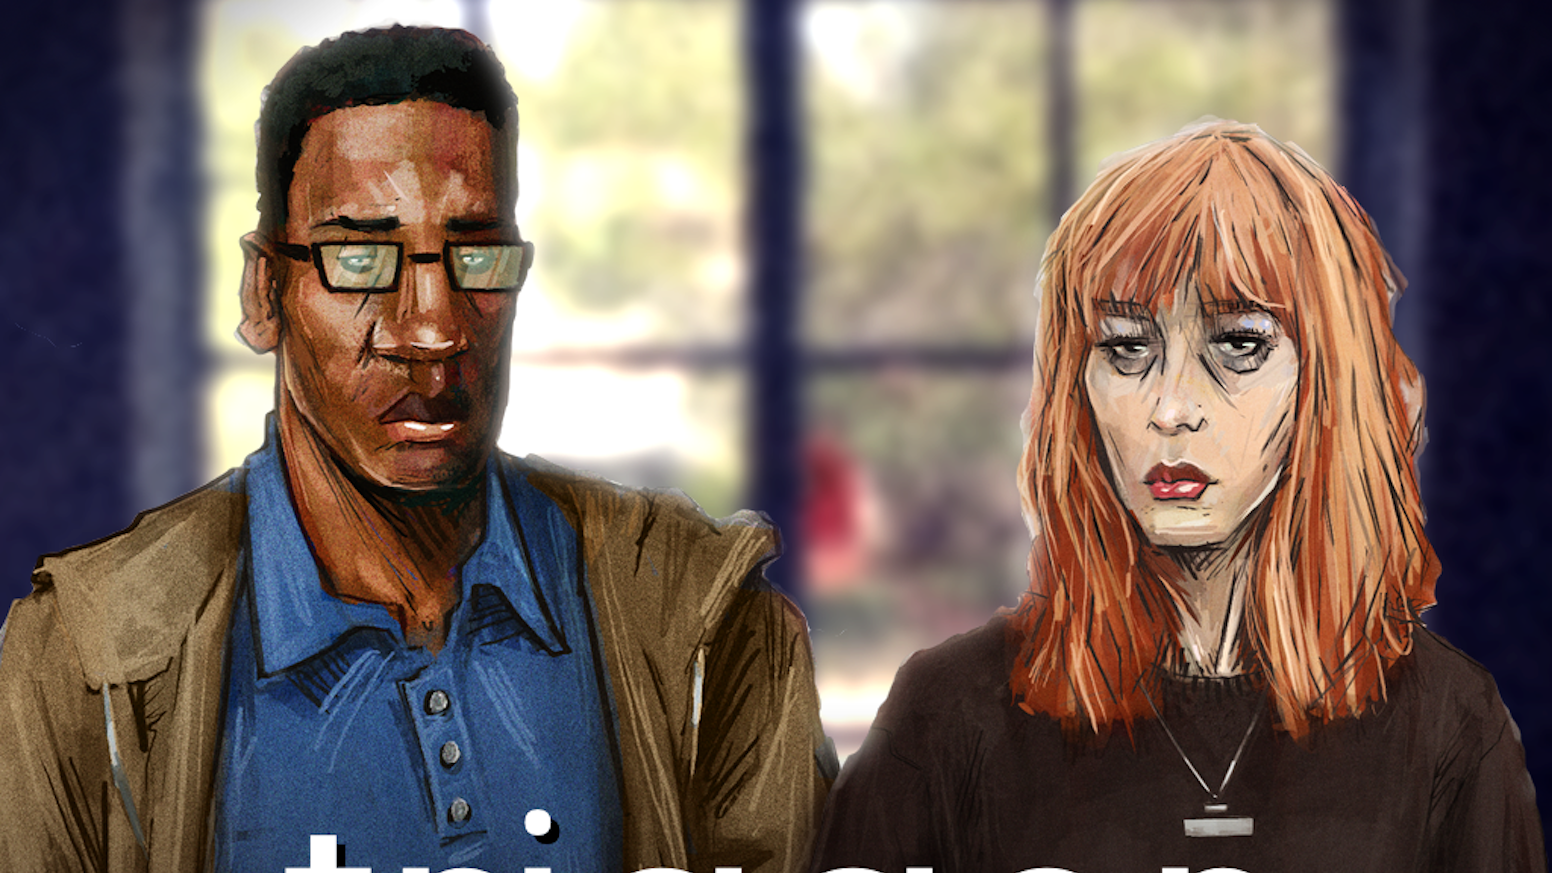 An interactive story (visual novel) told from the perspective of a survivor realizing she has PTSD.